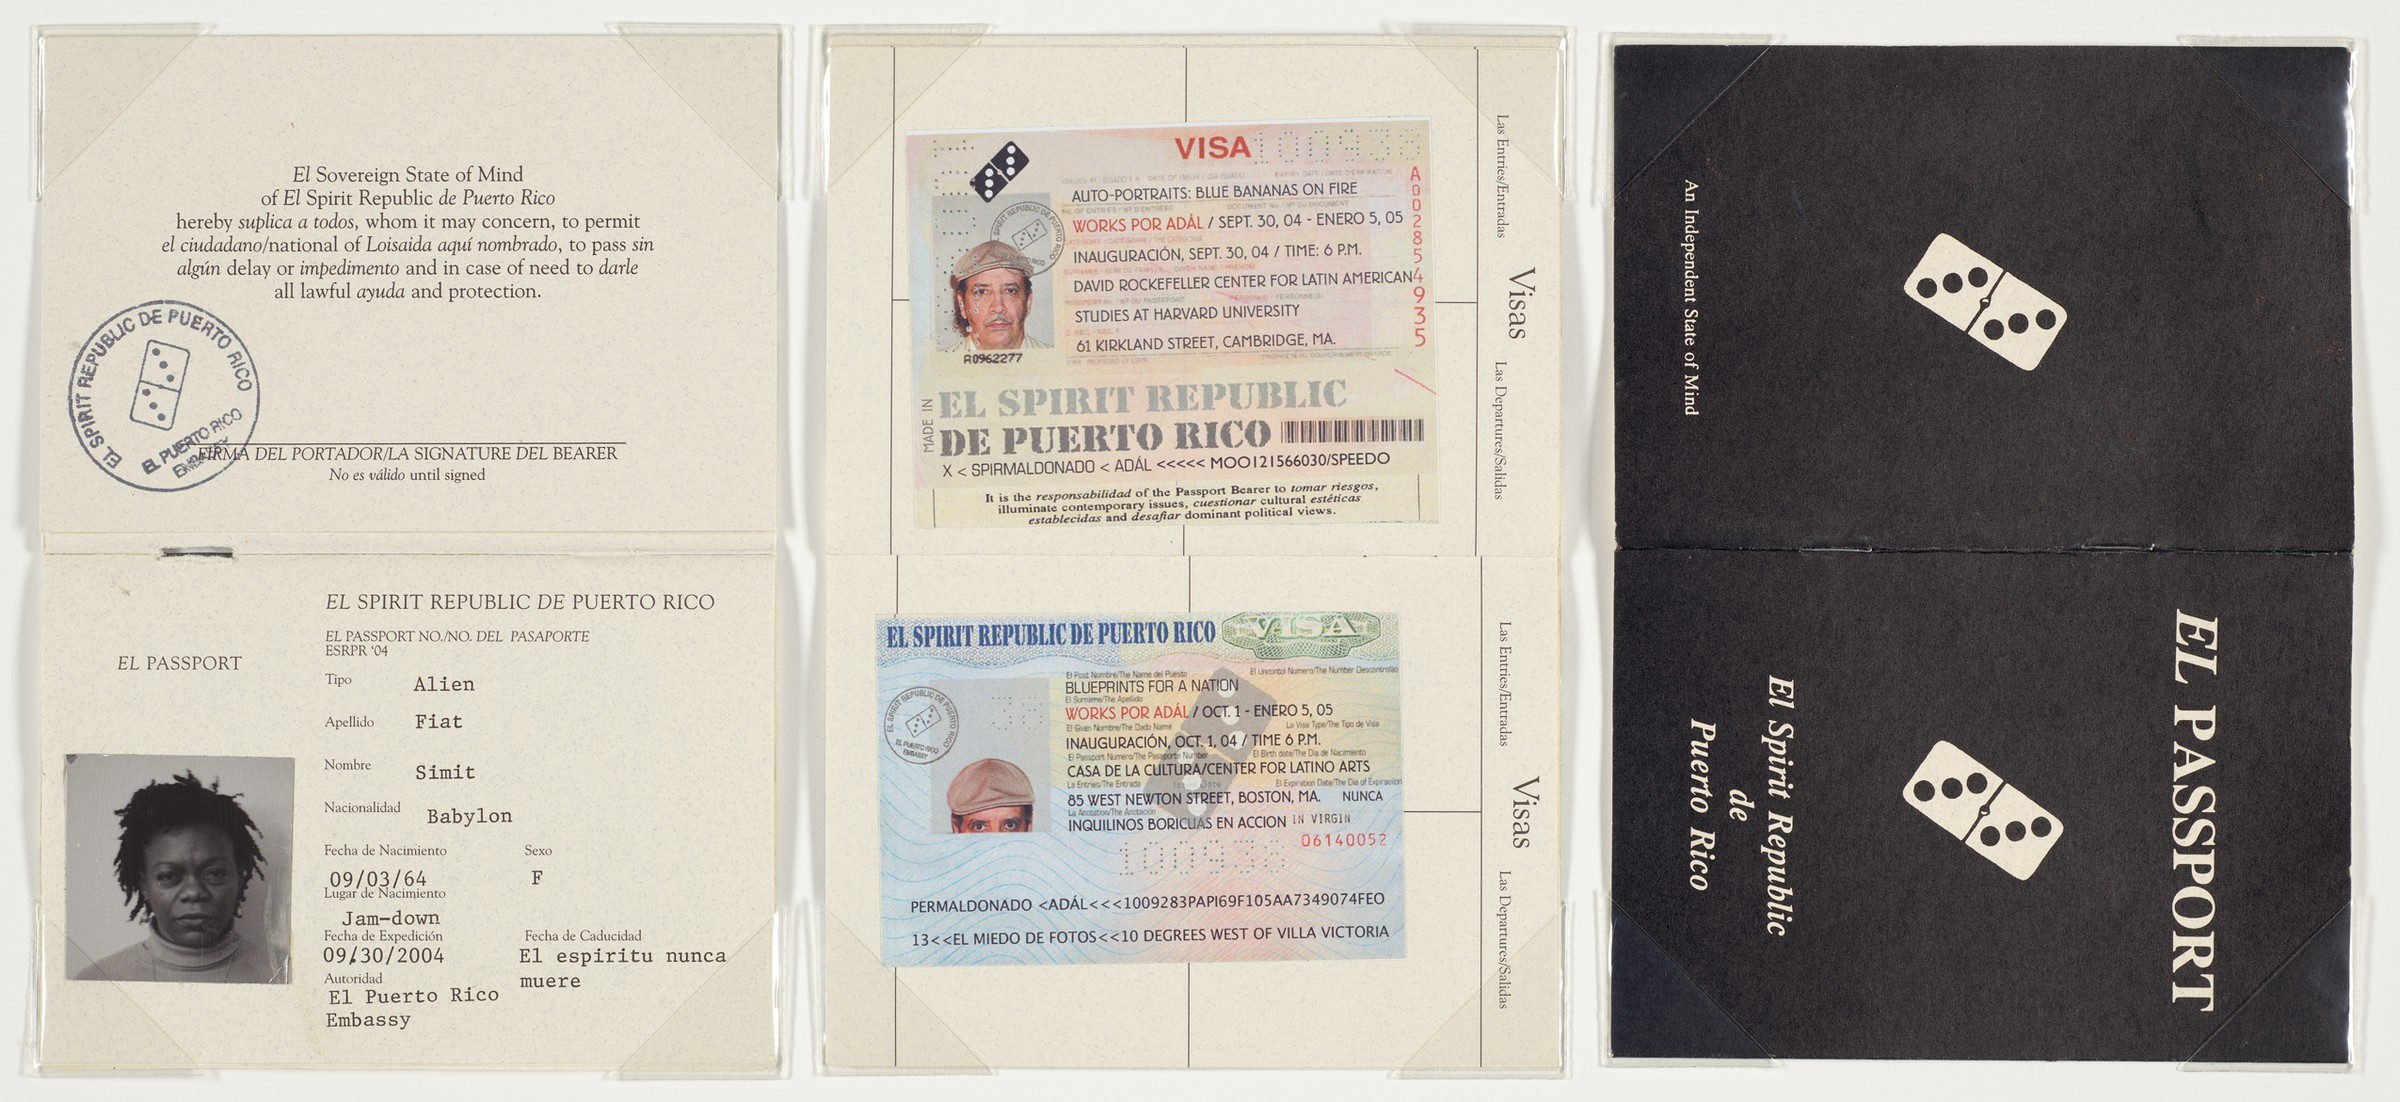 """There are two images side by side. The left-hand image is in a horizontal format and comprises three sheets resembling passport folios displayed in a row. The sheet on the left appears to be a passport with a photograph of a Black individual accompanied by text and a passport stamp. The folio in the middle features two small rectangular ID documents that appear to be green cards or visas. One the right, a black passport """"cover"""" reads """"El Passport"""" in white text on a black background, accompanied by an image of a white domino with three black dots on each end and additional white lettering. The image on the right is a photograph of a white bungalow house. It has a red brick porch with two black patio chairs and a brown wooden door. An """"OPEN"""" sign hangs on the door. Green boxwood shrubs line the foundation."""